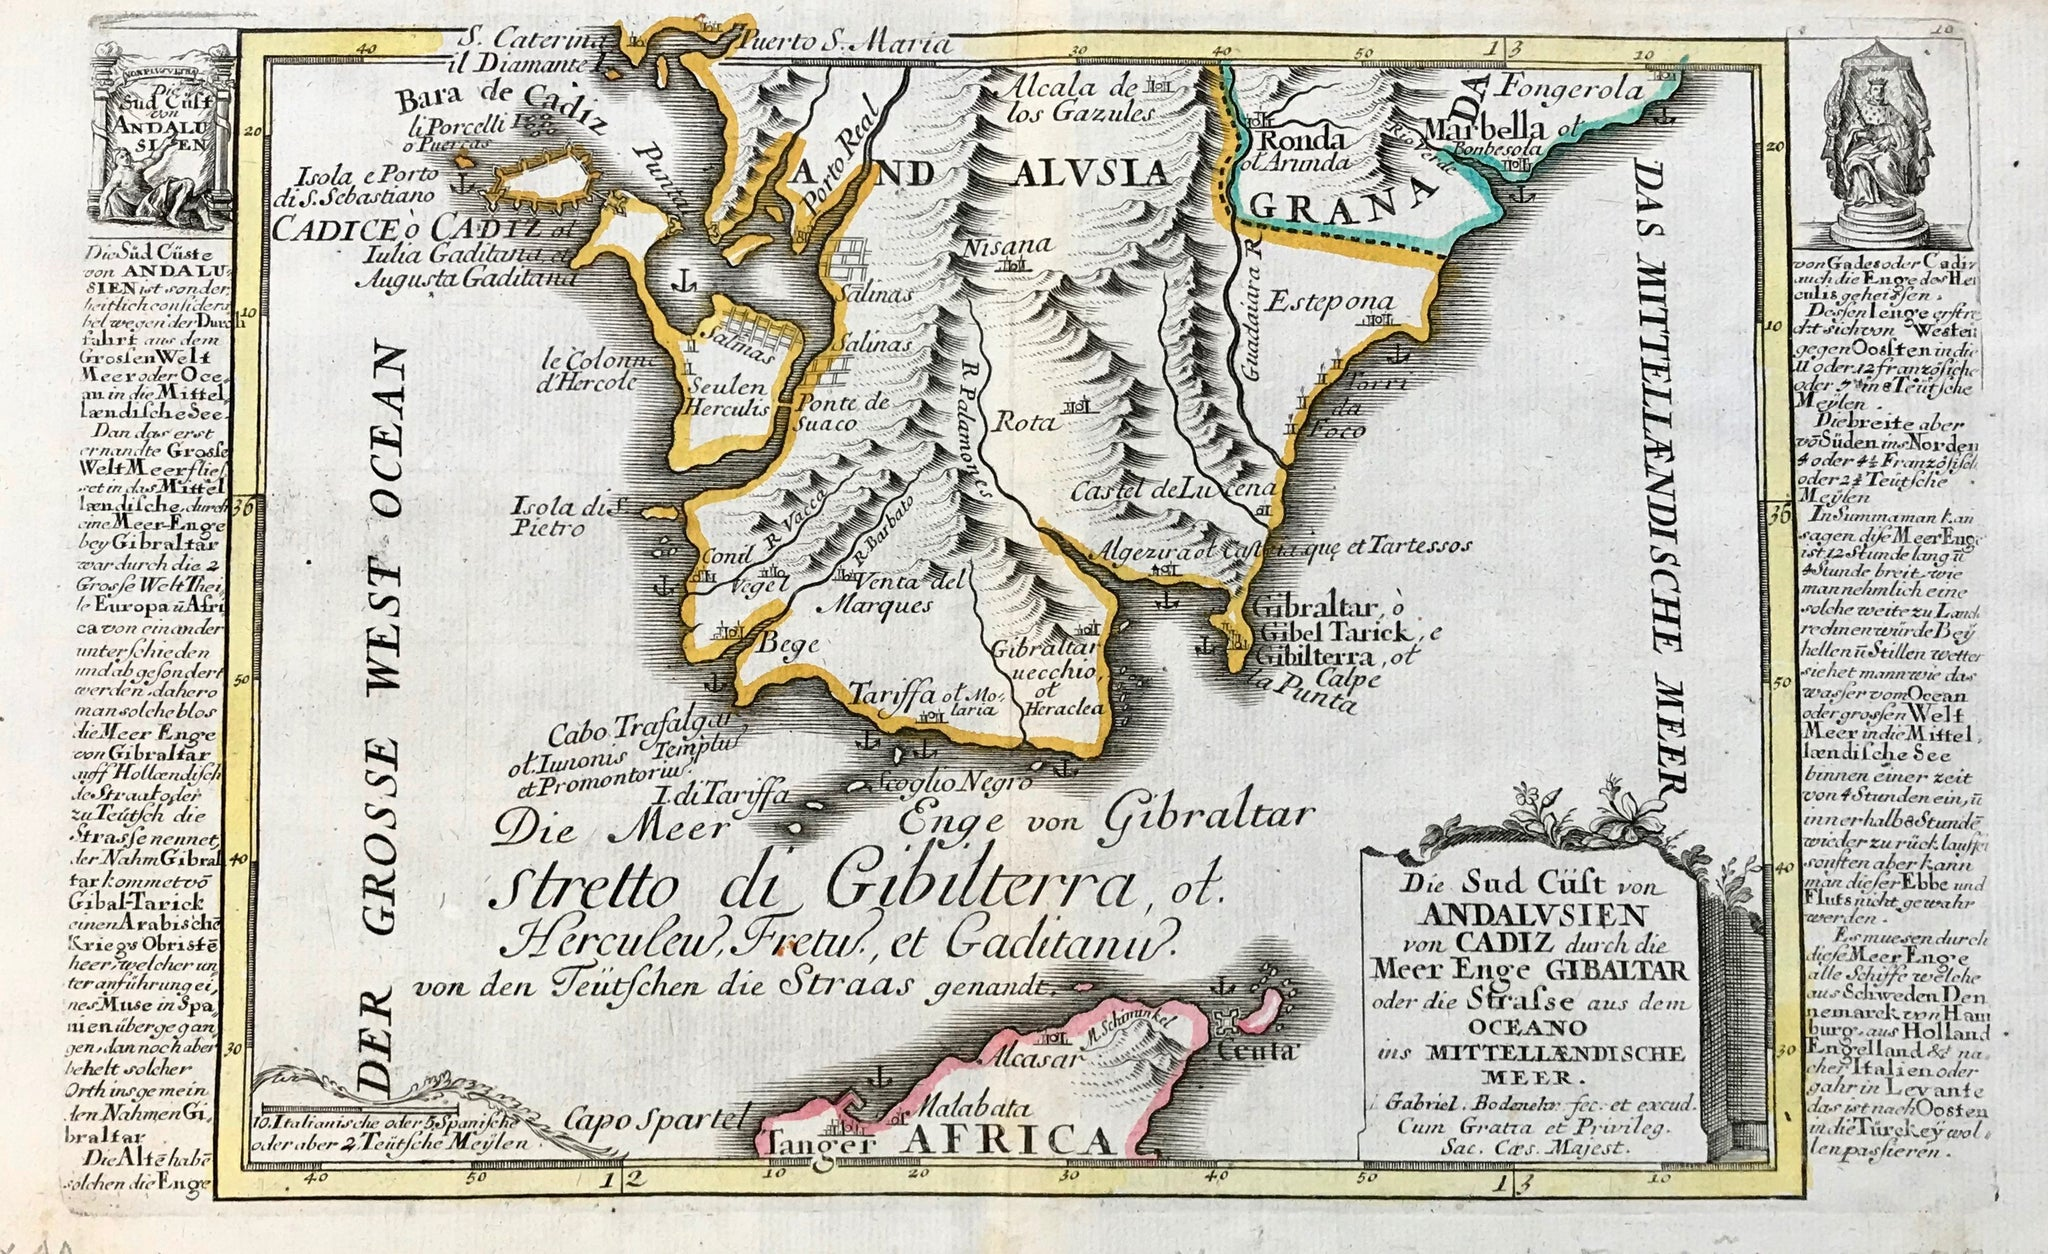 """Die Sud Cuest von Andalusien von Cadiz durch die Meer Enge Gibraltar oder die Strasse aus dem Oceano ins Mittellaendische Meer"" Copper engraving by Gabriel Bodenehr ca 1705. Original hand coloring.  The Strait of Gibraltar and the southern tip of Spain is the theme of this detailed map. On both sides of the map is very detailed historical information (in German) about the places shown on the map. At the bottom is a bit of northern Africa with Tangier and Ceuta."